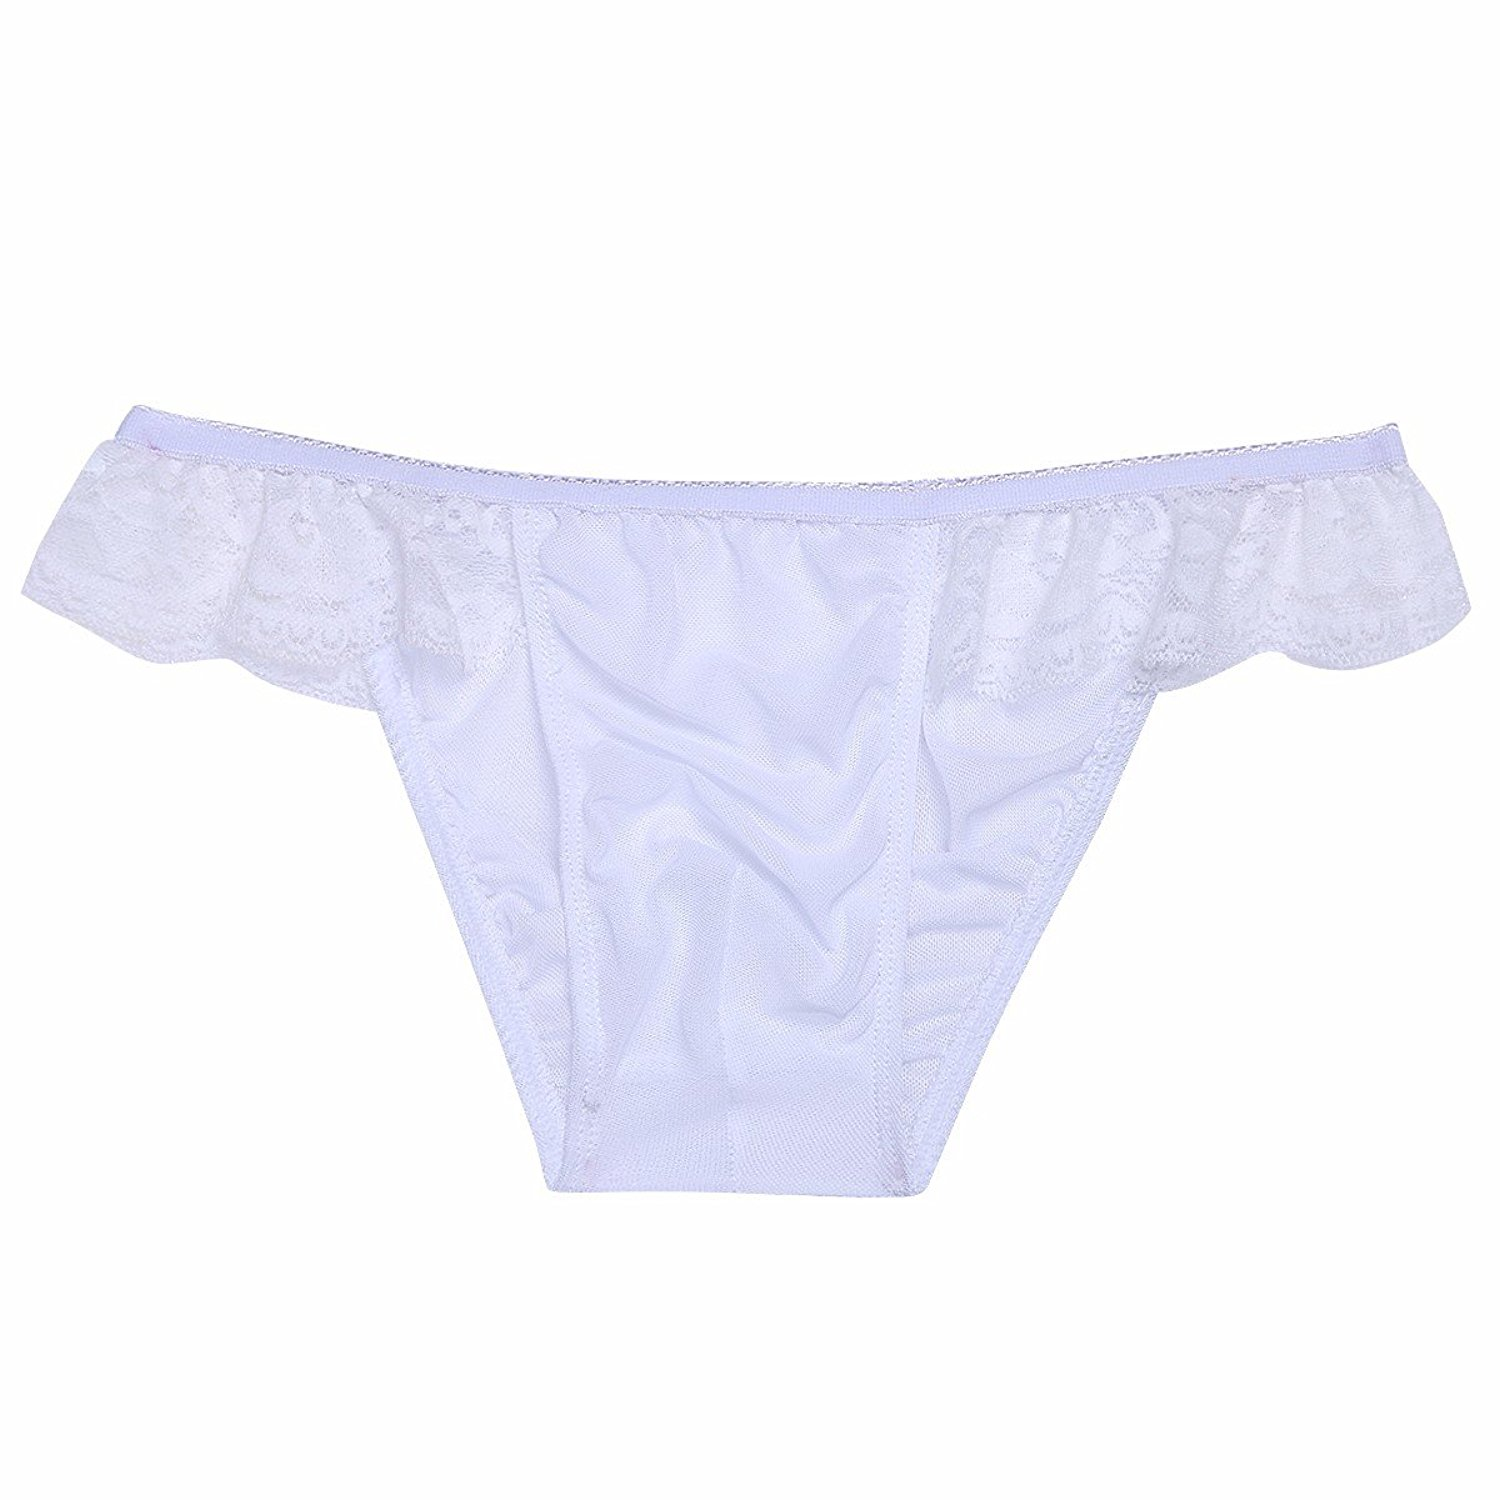 3495a4b8d30c Get Quotations · iiniim Men's Sexy Mesh Sheer Lace Sissy Underwear Thong  Pouch